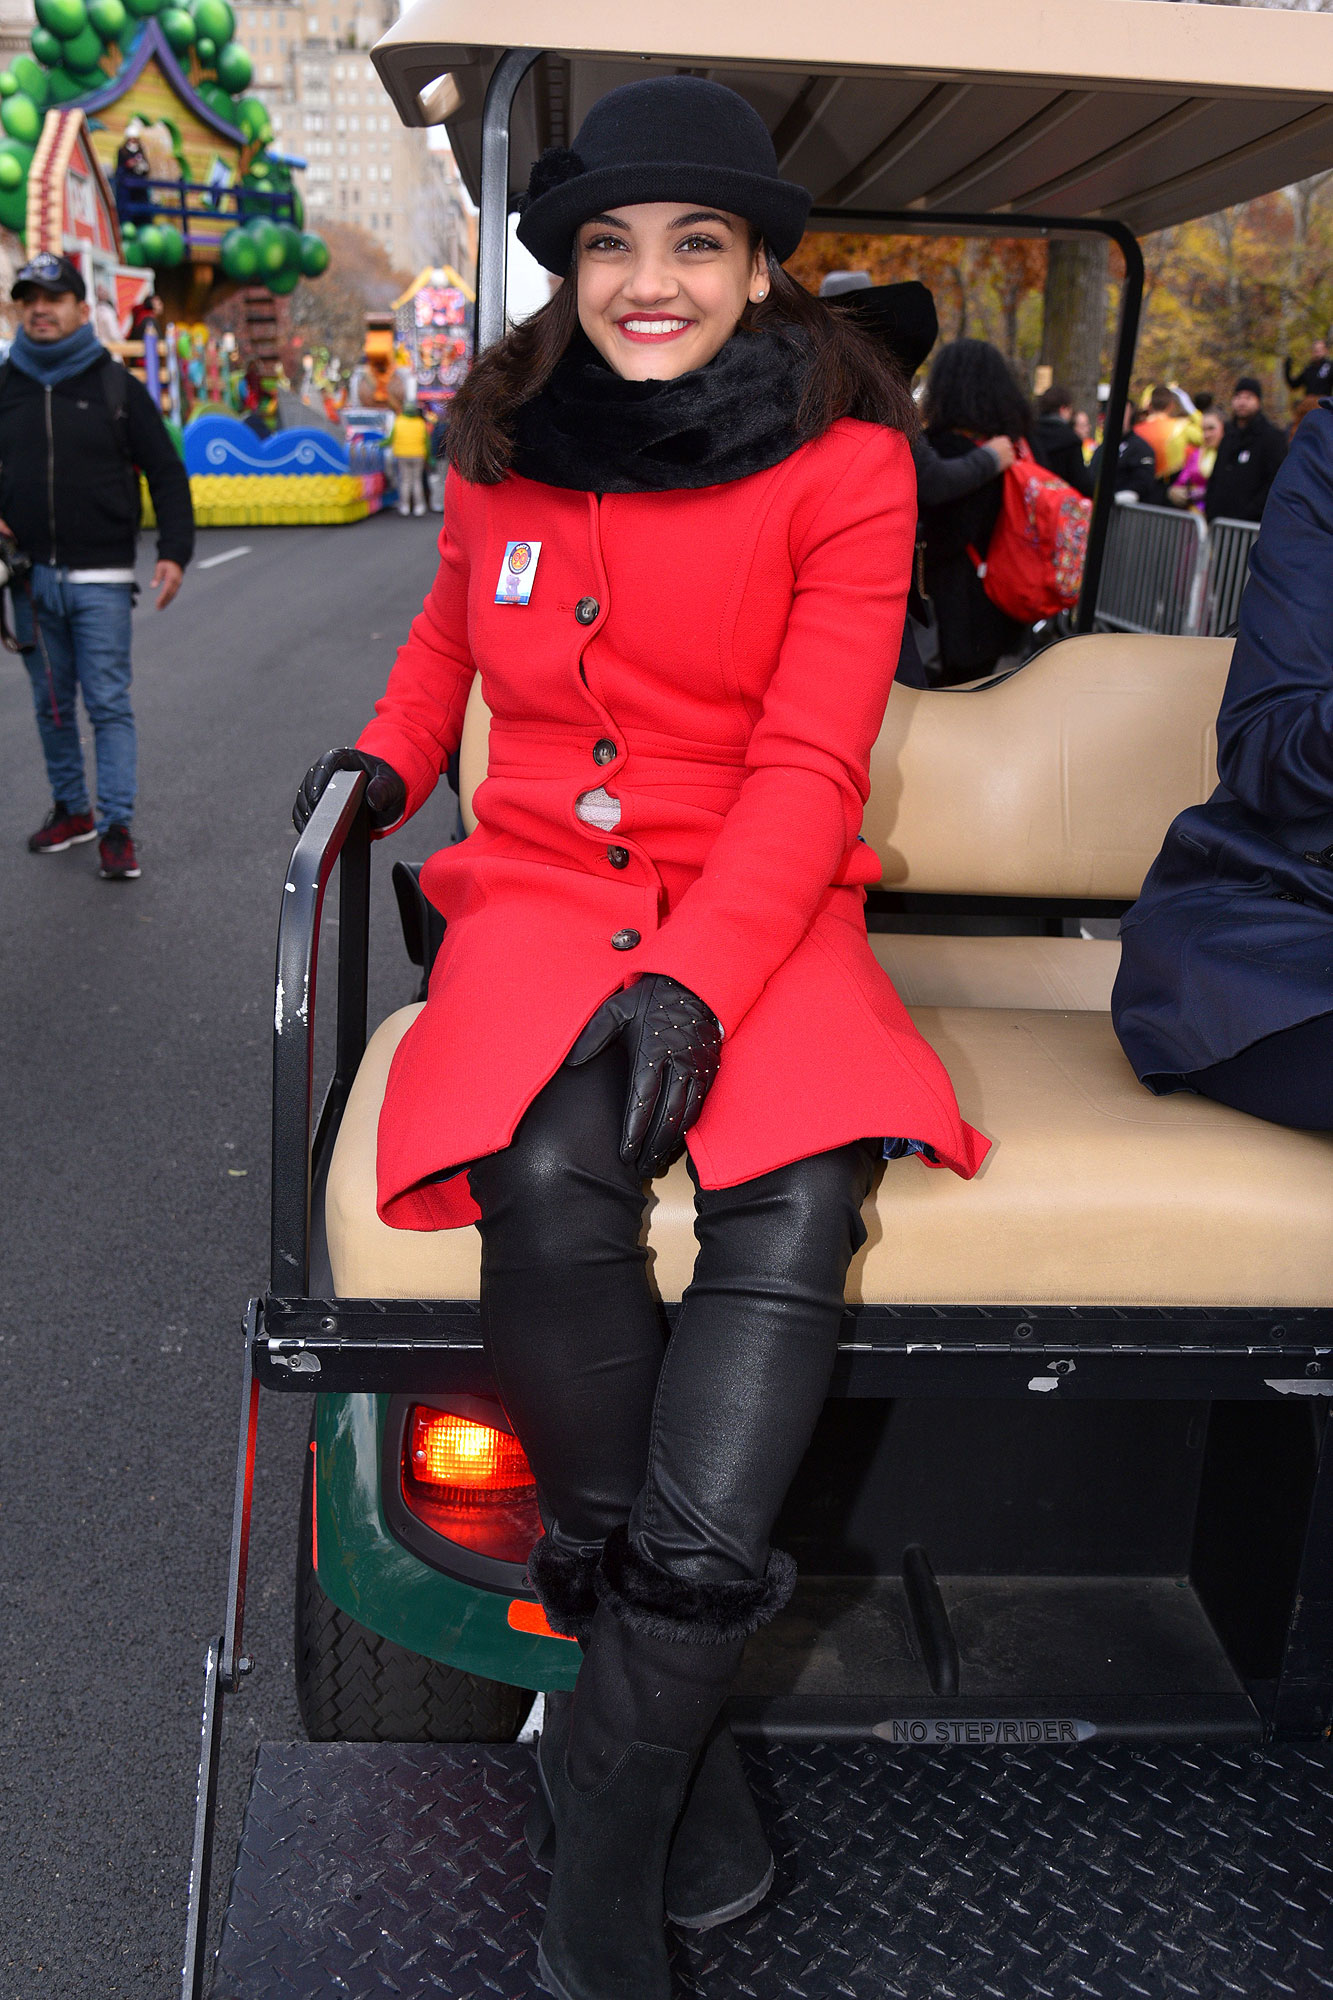 Laurie Hernandez Macy's Thanksgiving Day Parade, New York, USA - 24 Nov 2016